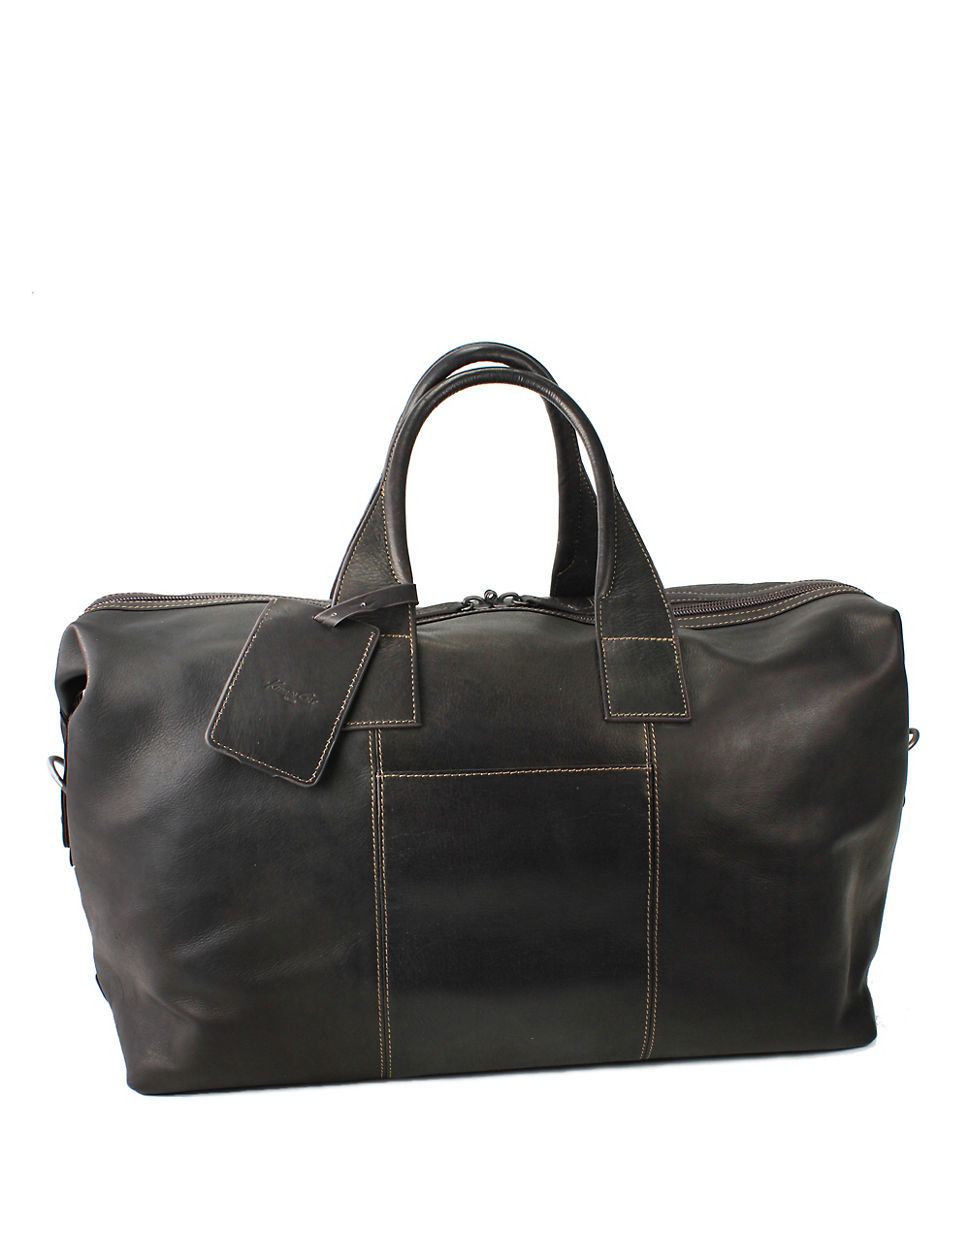 Simple Kenneth Cole Reaction Leather Duffle Bag In Black  Lyst